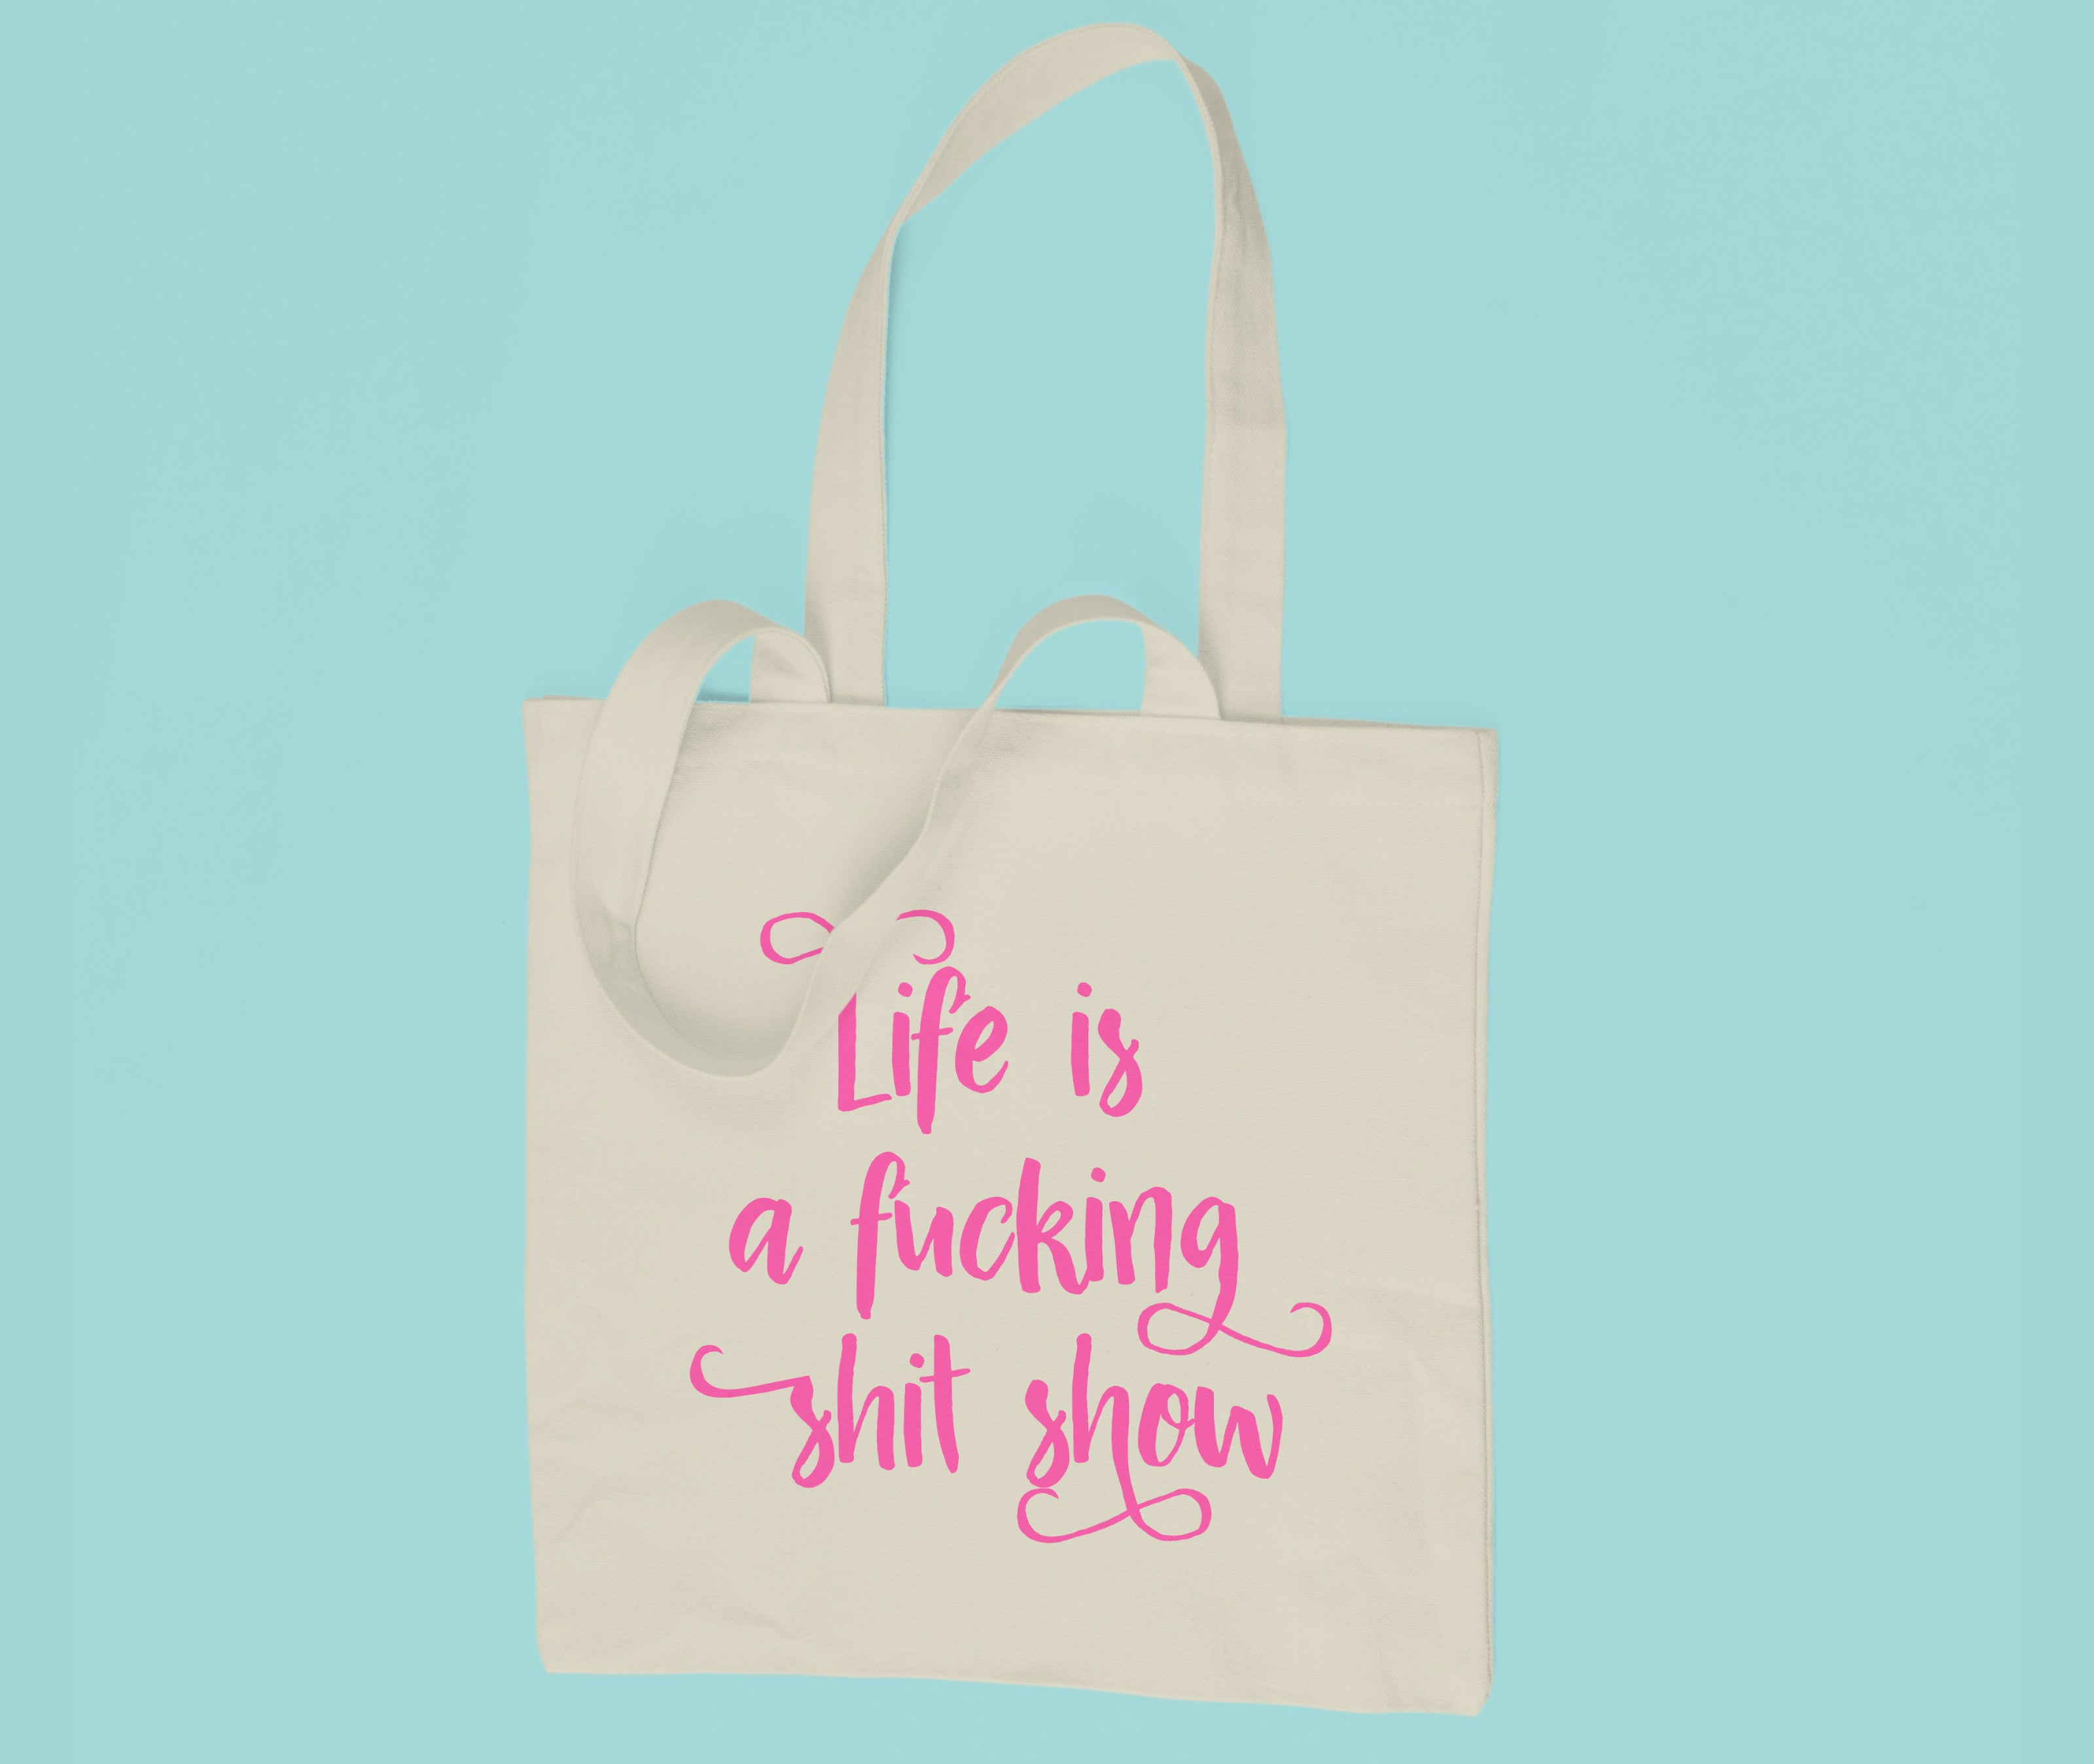 Life is a fucking shit show - Tote Bag